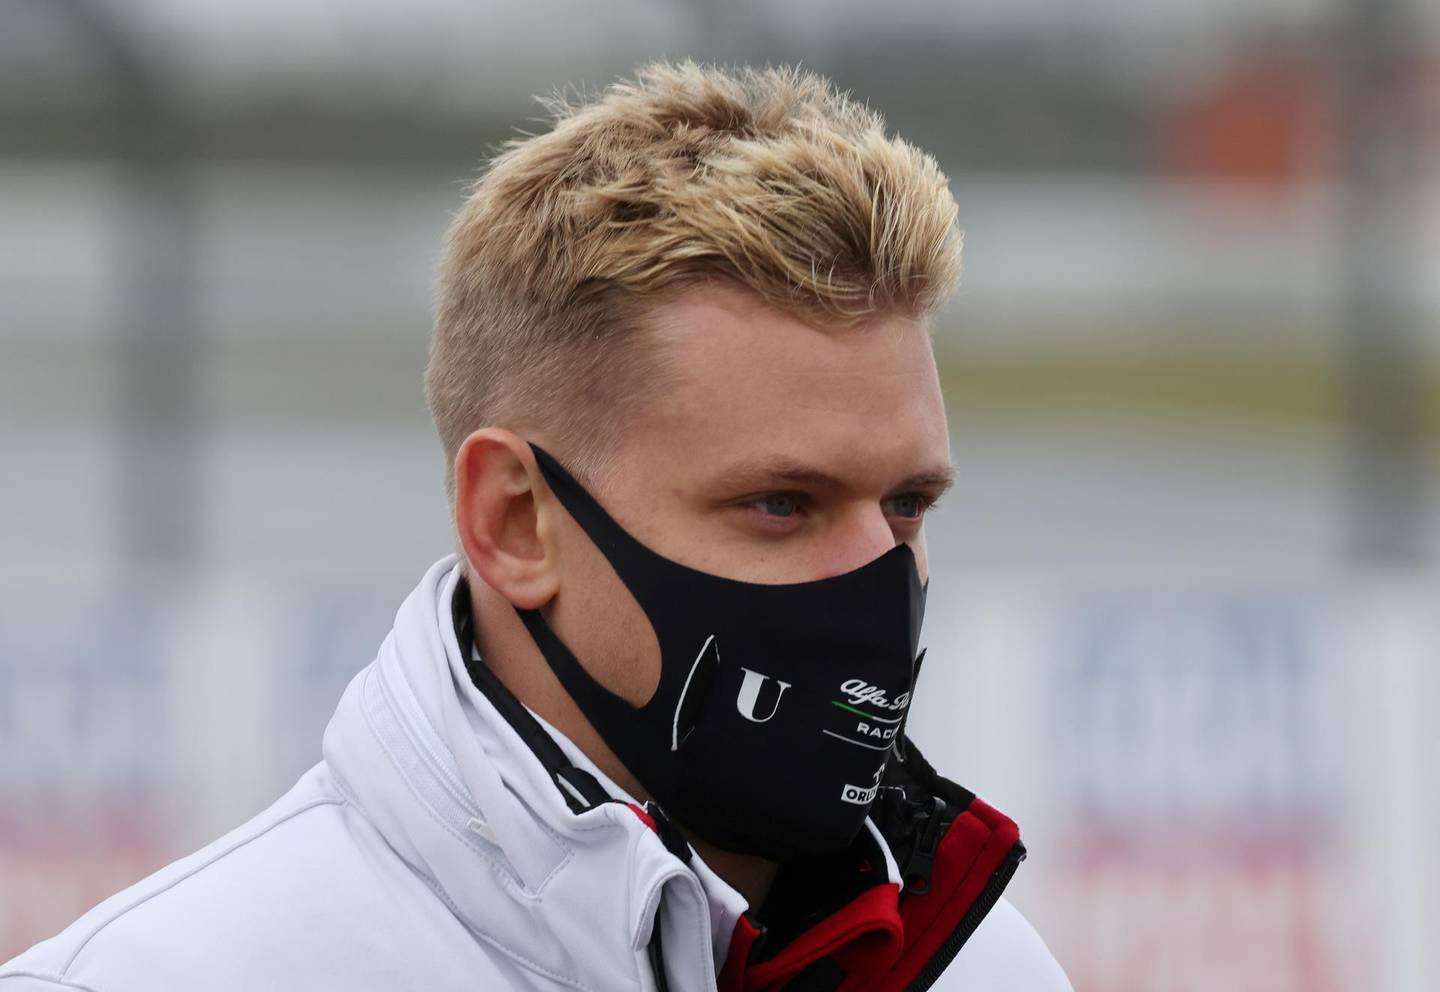 FILE PHOTO: Formula One F1 - Eifel Grand Prix - Nurburgring, Nurburg, Germany - October 8, 2020   Alfa Romeo's Mick Schumacher on the circuit wearing a protective face mask with his team ahead of the Grand Prix   REUTERS/Wolfgang Rattay/File Photo